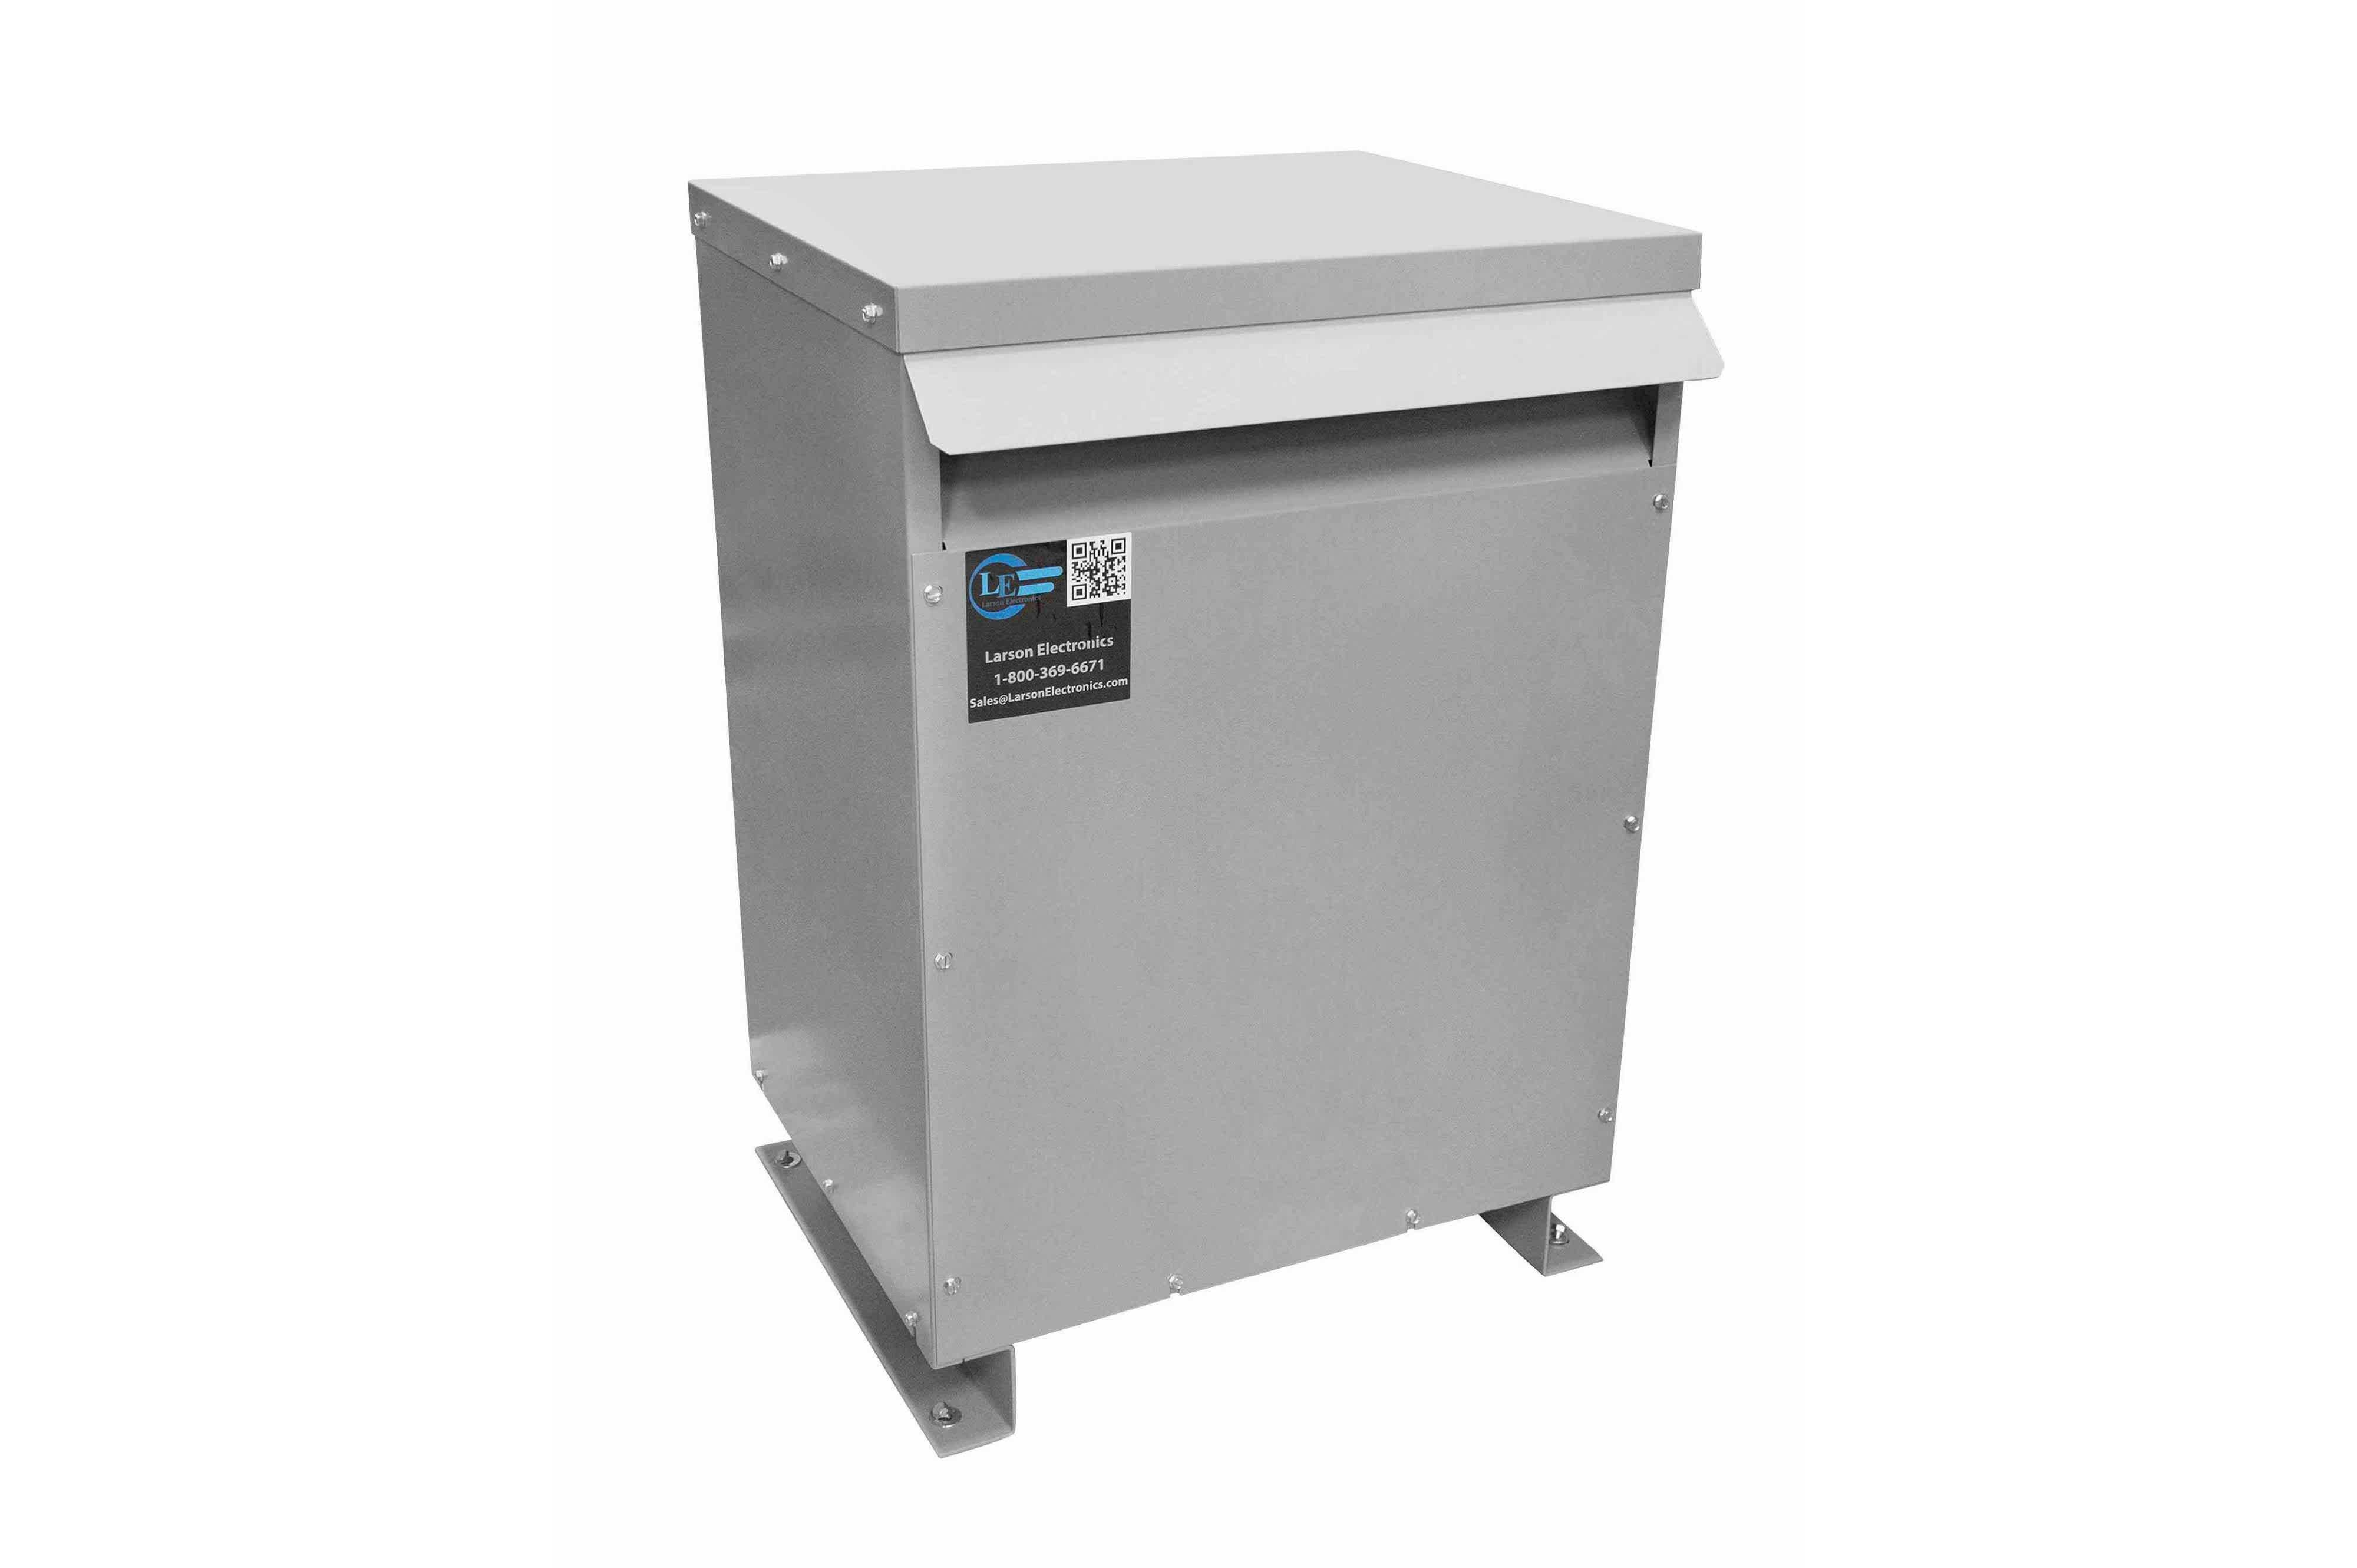 26 kVA 3PH DOE Transformer, 400V Delta Primary, 480Y/277 Wye-N Secondary, N3R, Ventilated, 60 Hz